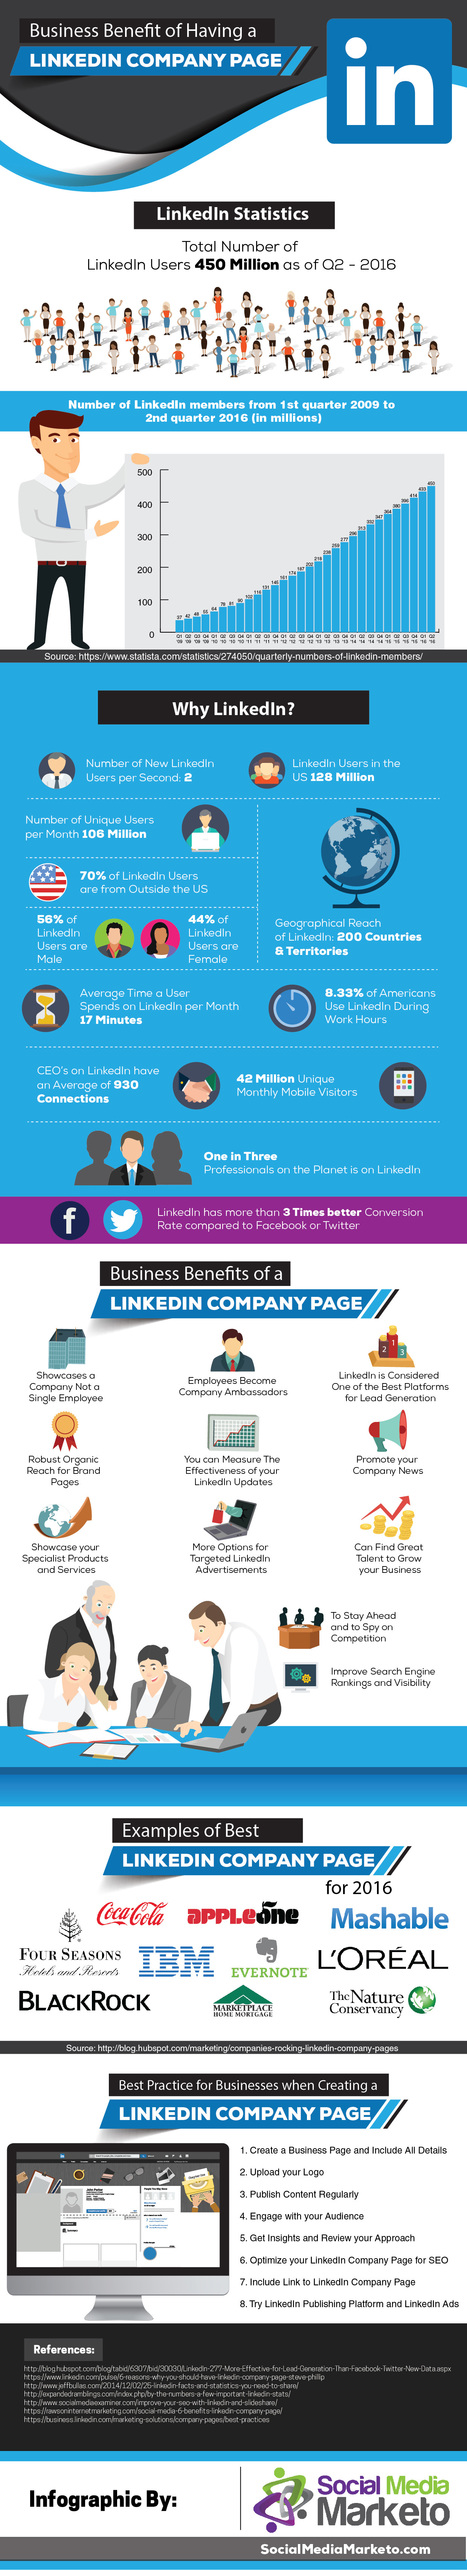 The Business Benefits of a LinkedIn Company Page #Infographic | Marketing Tips | Scoop.it